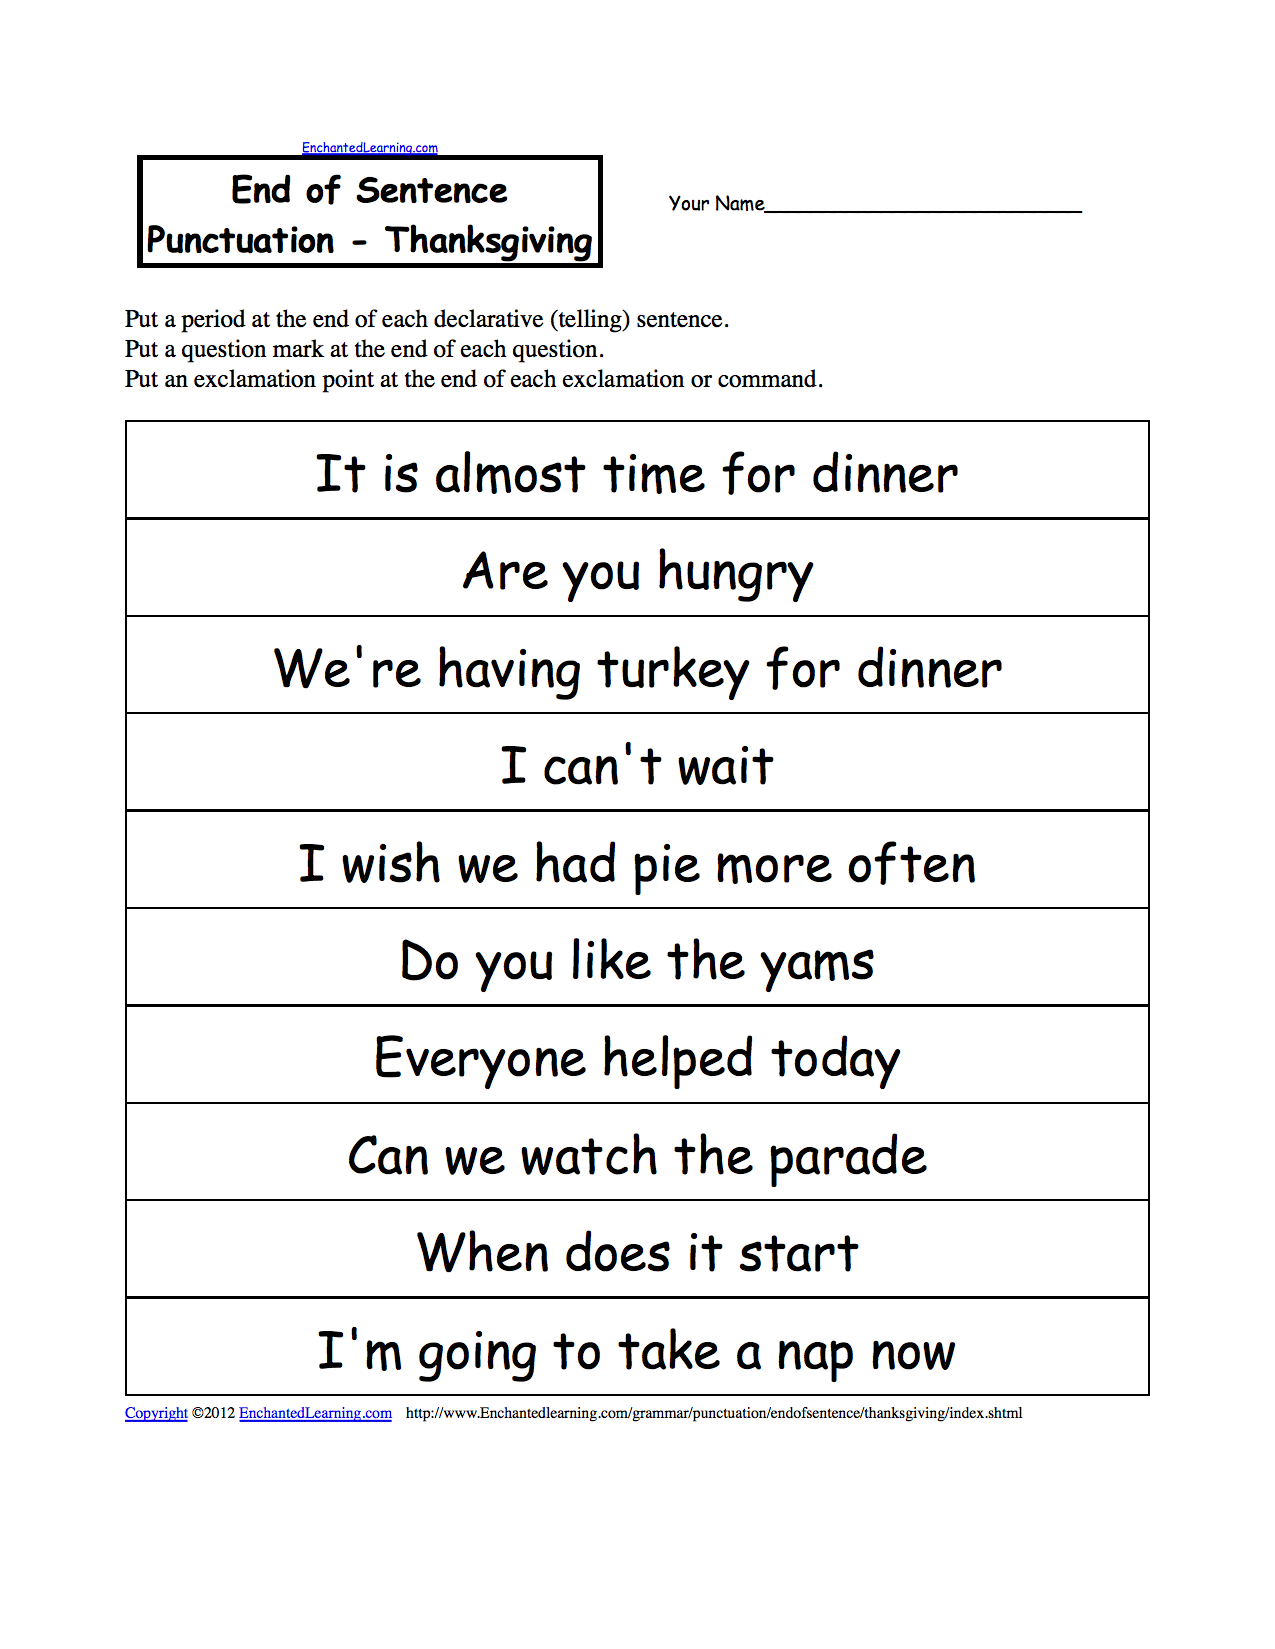 worksheet Thanksgiving Printable Worksheets thanksgiving crafts worksheets and activities punctuate